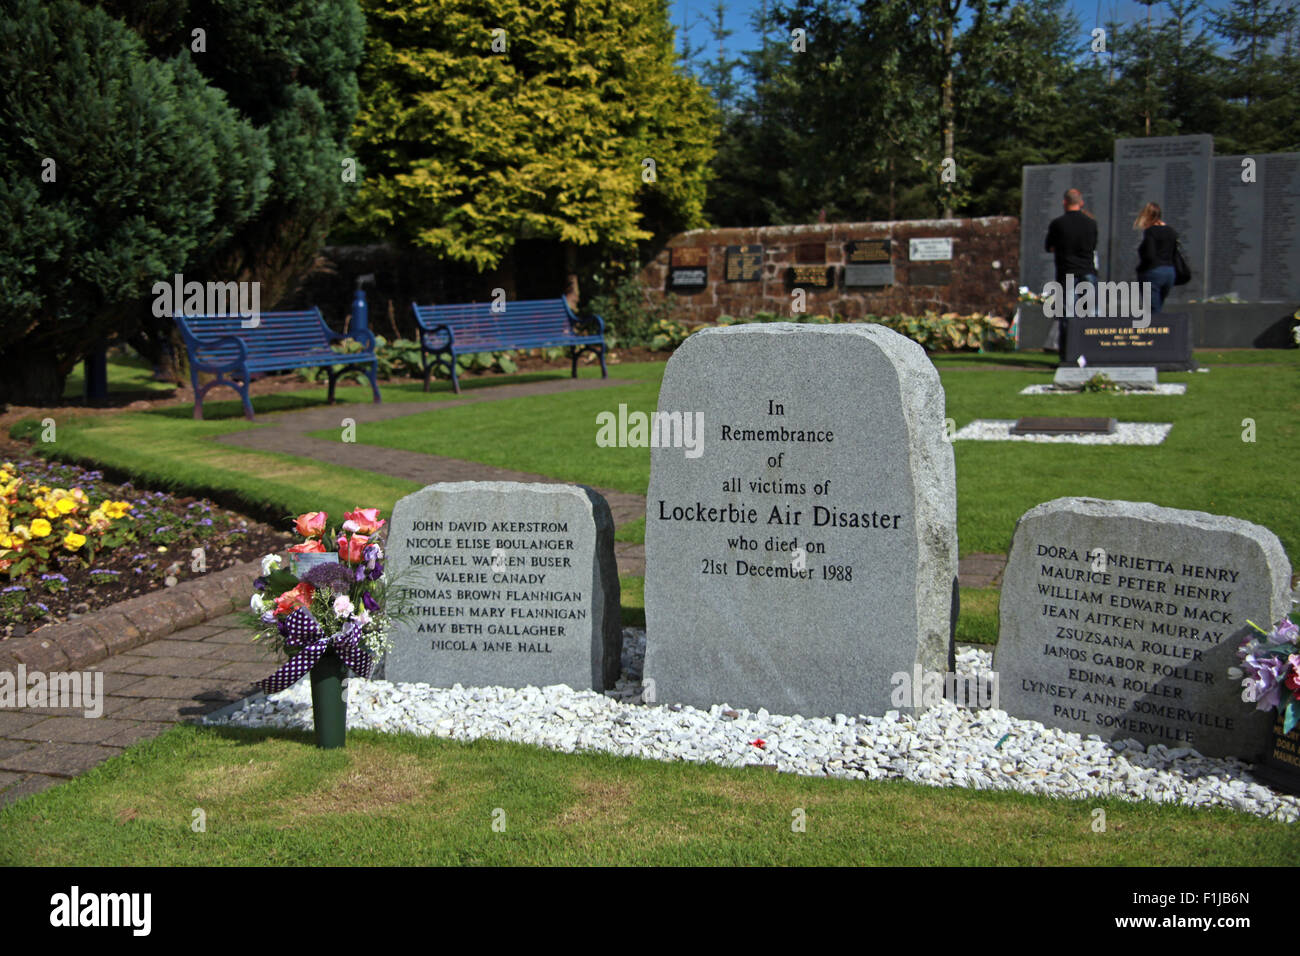 Lockerbie PanAm103 In Rememberance Memorial two Visitors Remembering, Scotland - Stock Image